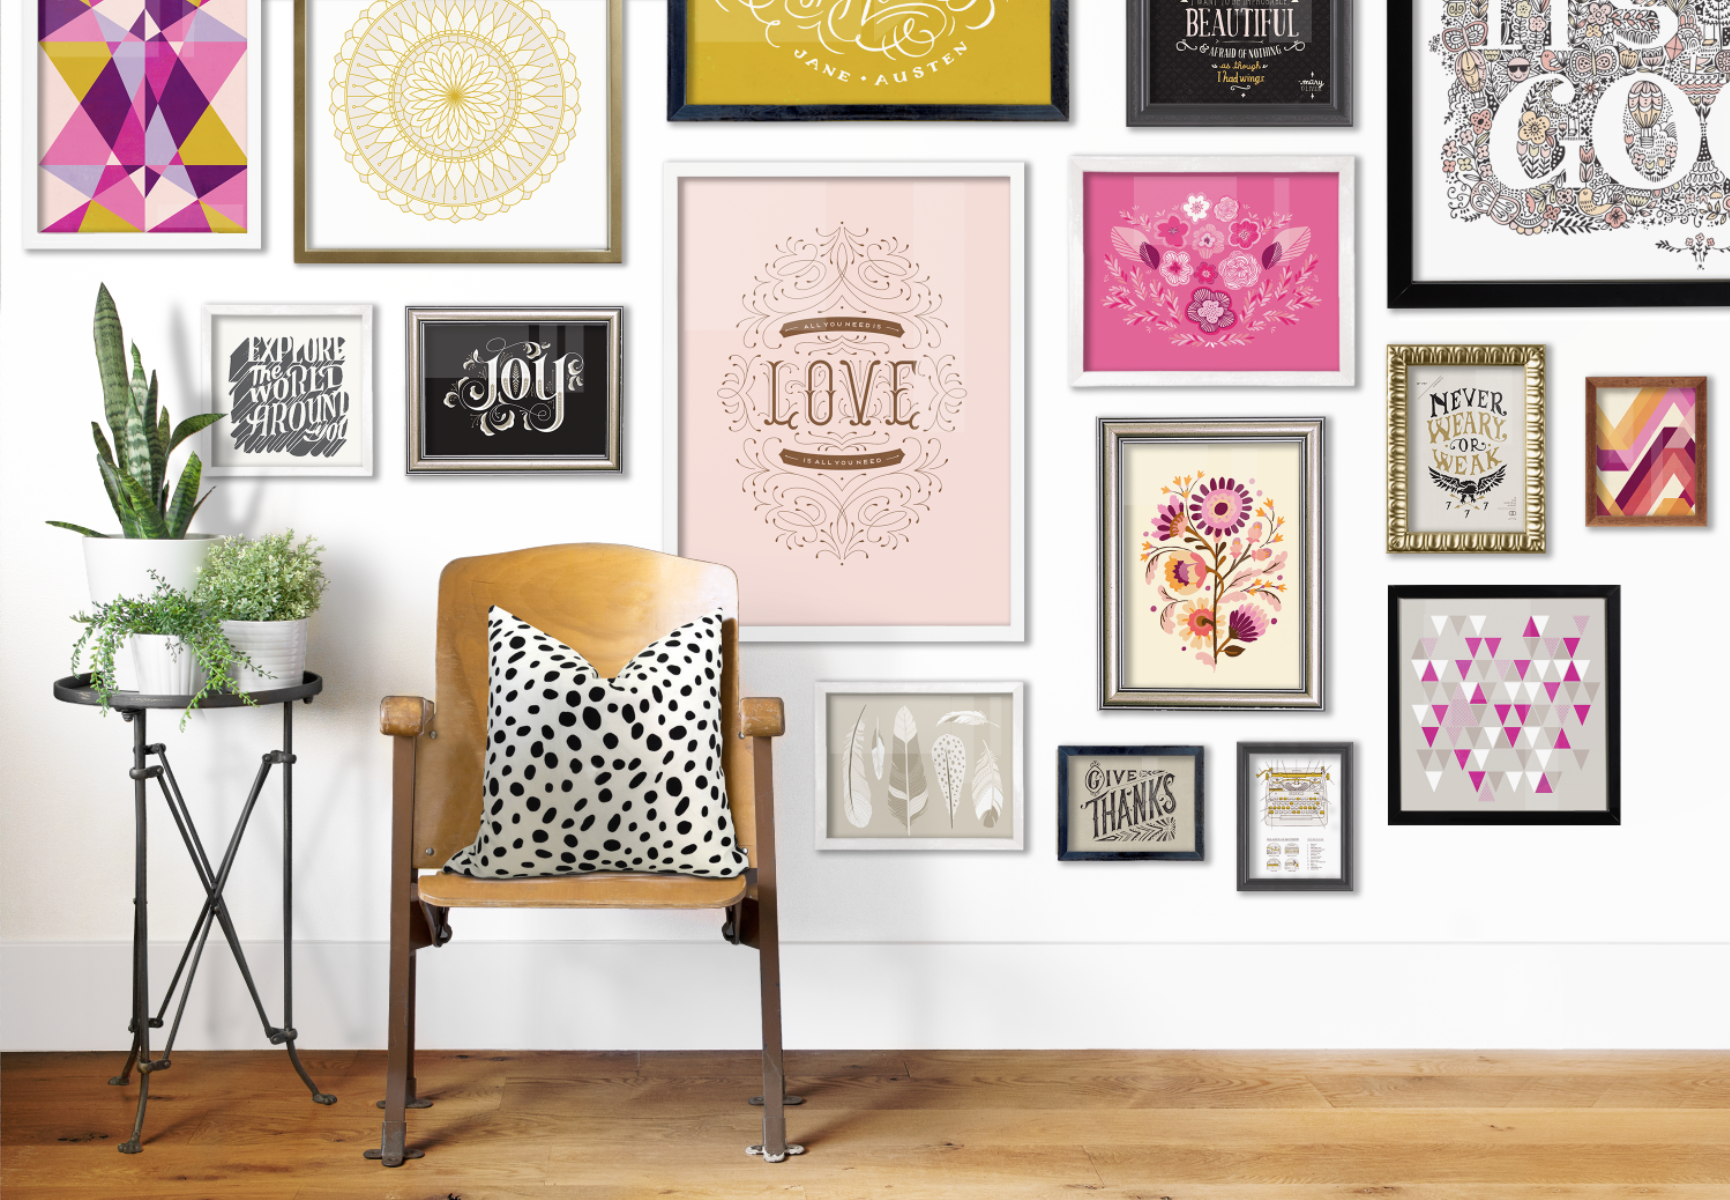 7 Gallery Wall Arrangements for Different... | HipVan Blog